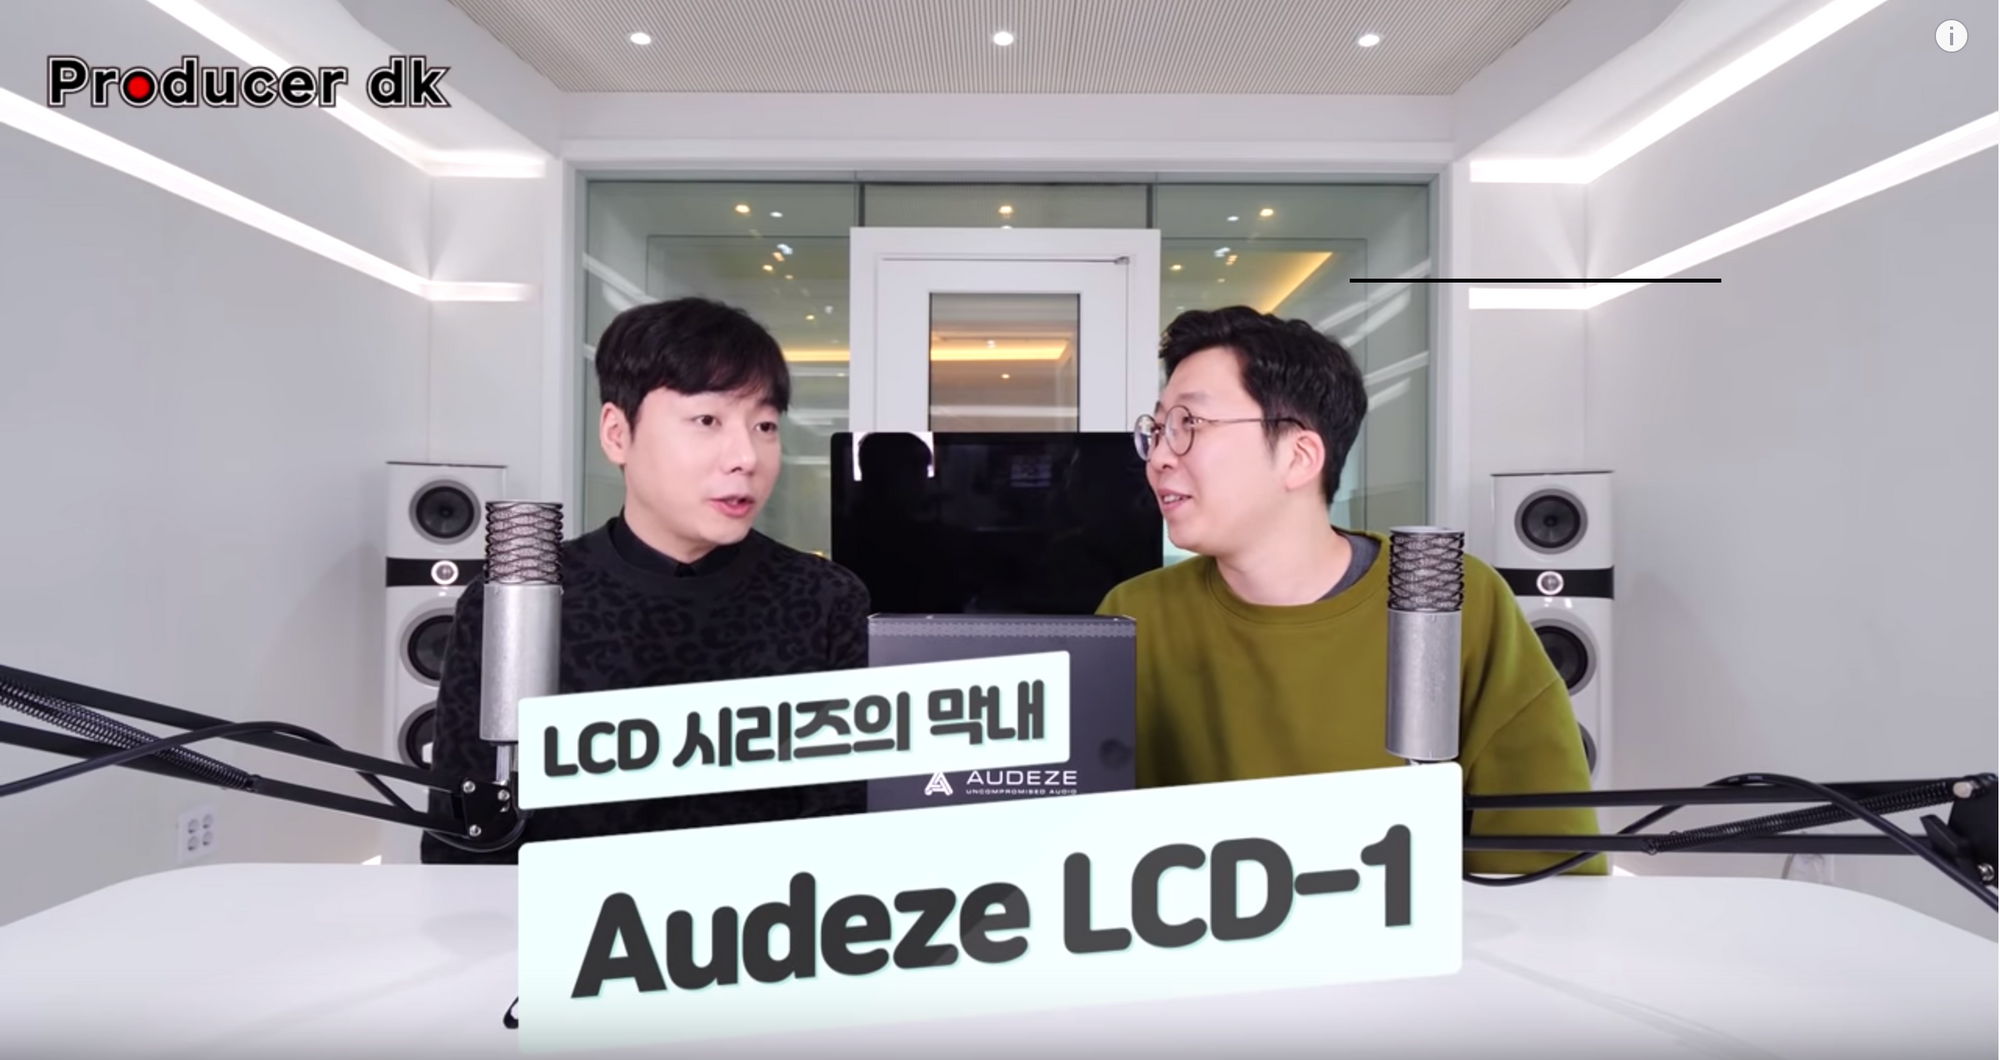 Producer DK Reviews the LCD-1!